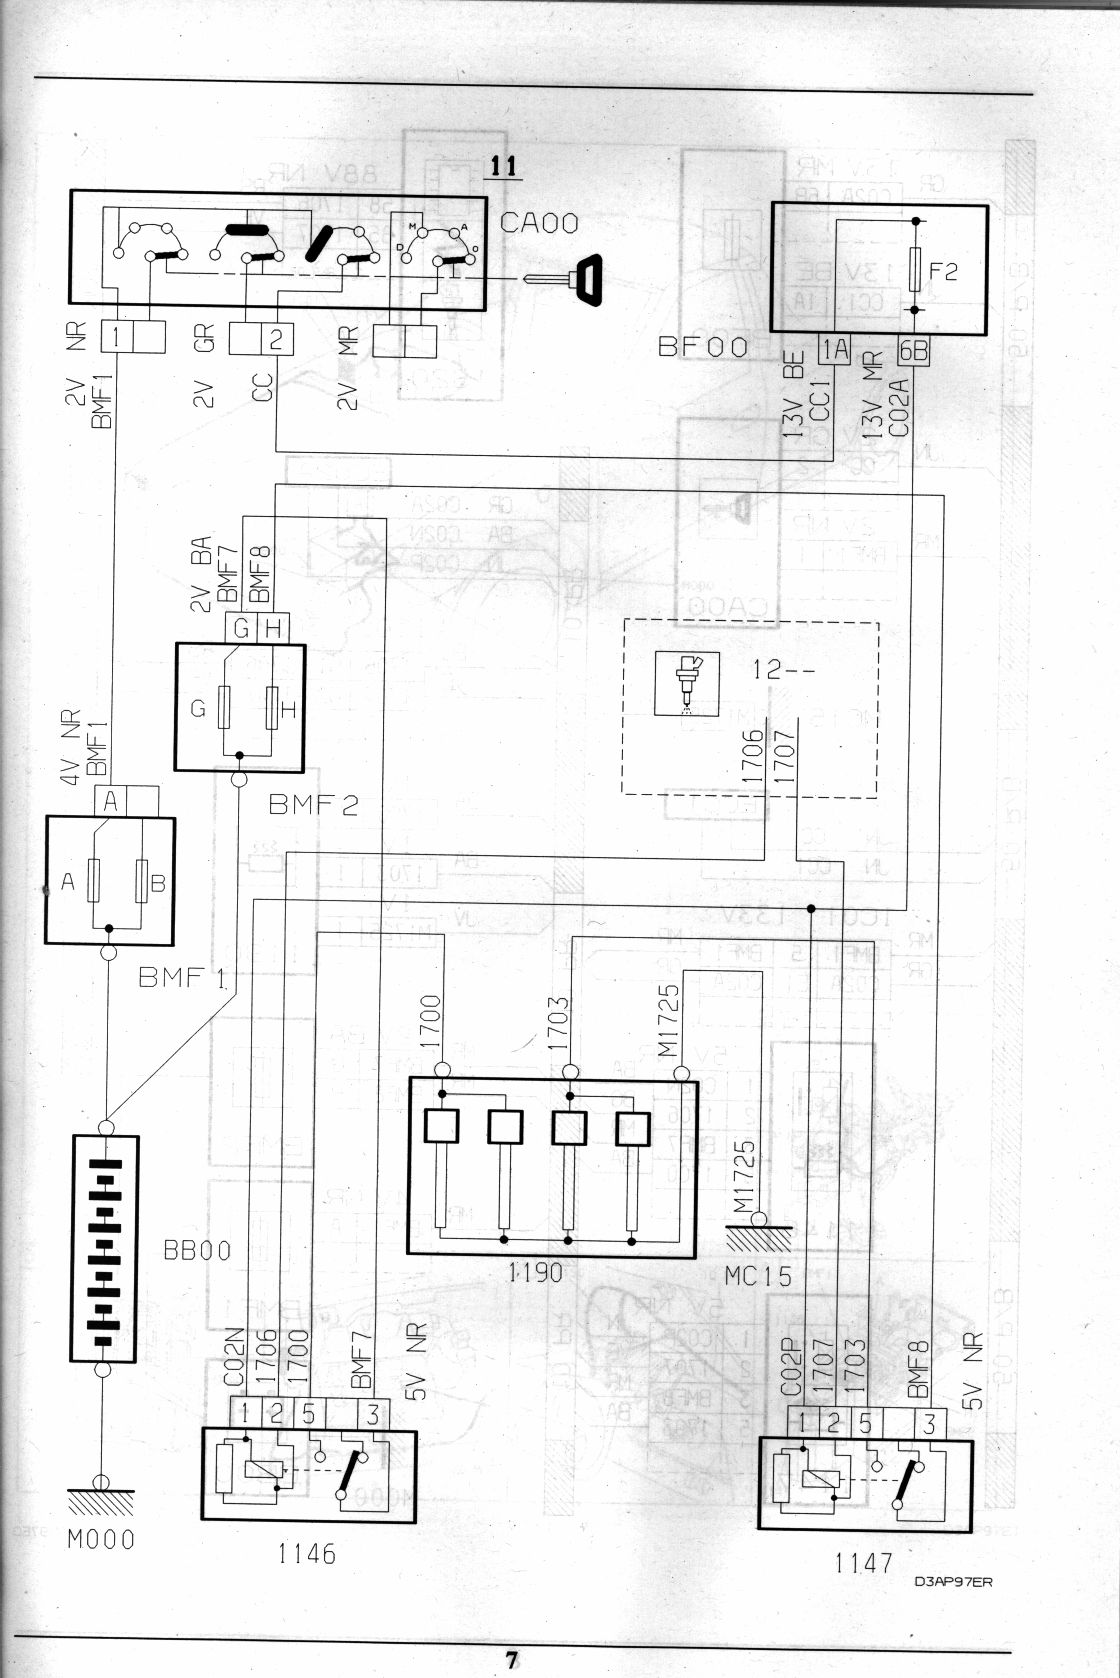 [WRG-4500] Wiring Diagram For Citroen Xsara Picasso